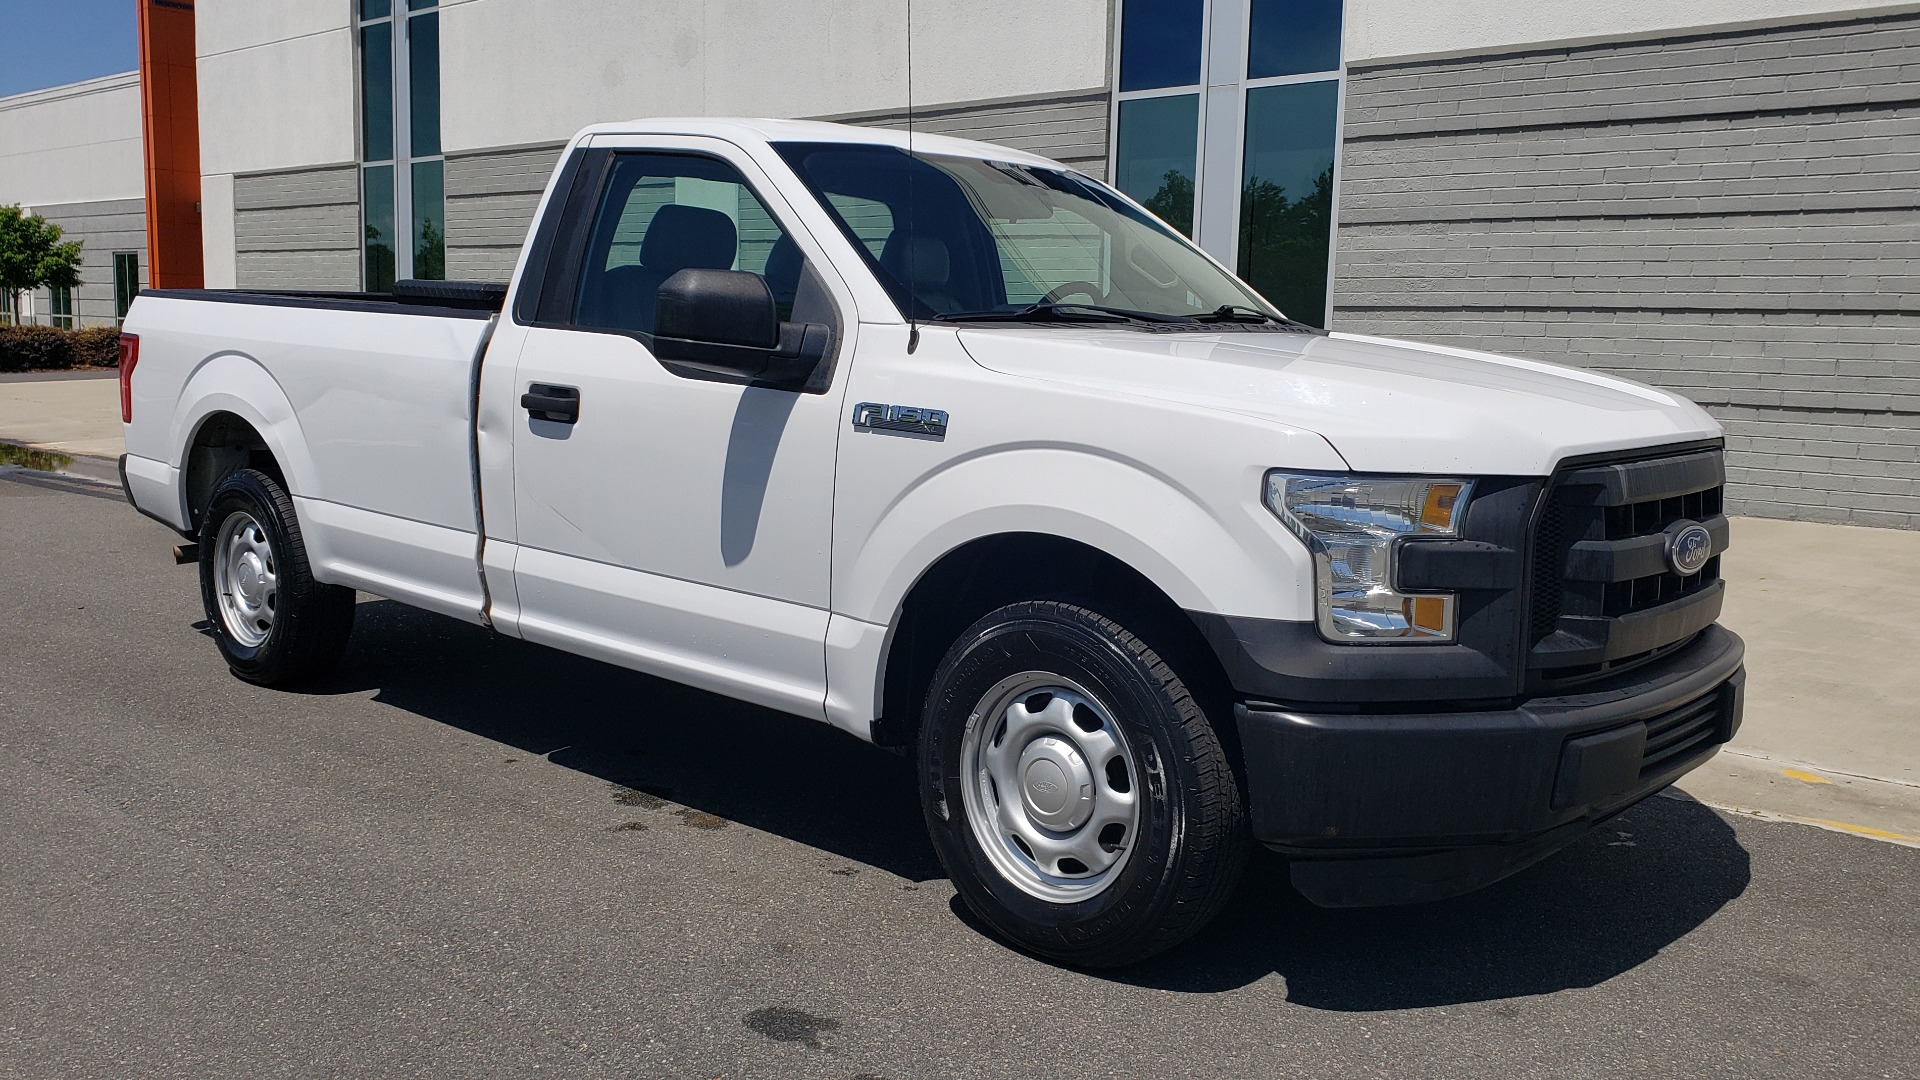 Used 2016 Ford F-150 XL 4X2 REGULAR CAB / 3.5L V6 / 6-SPD AUTO / CRUISE CONTROL for sale $12,995 at Formula Imports in Charlotte NC 28227 4